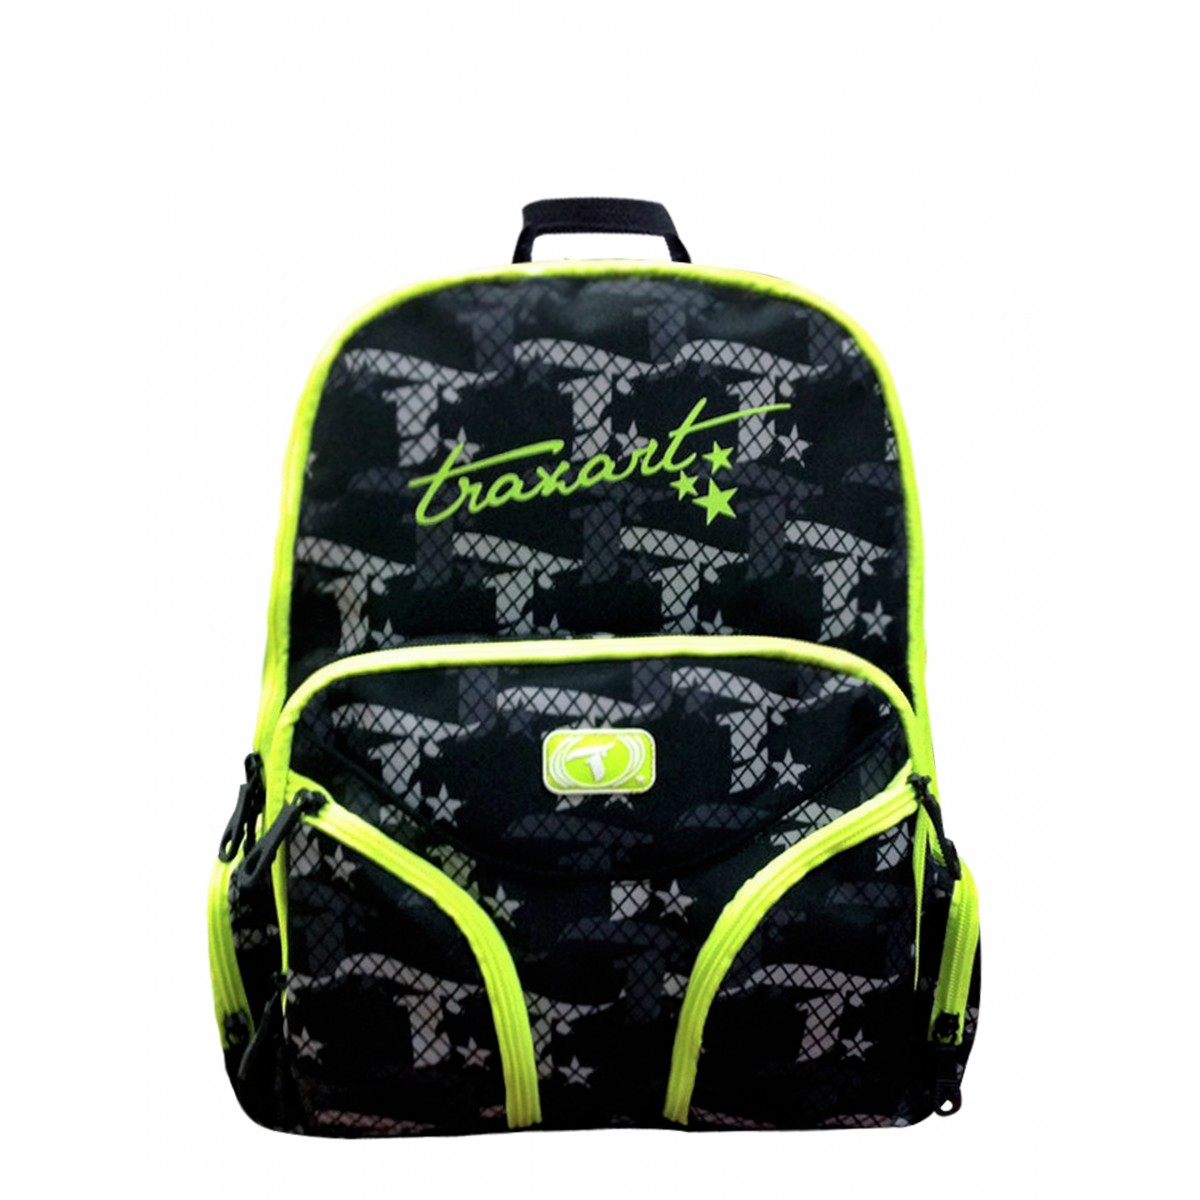 MOCHILA GIRLS - ESTAMPADO